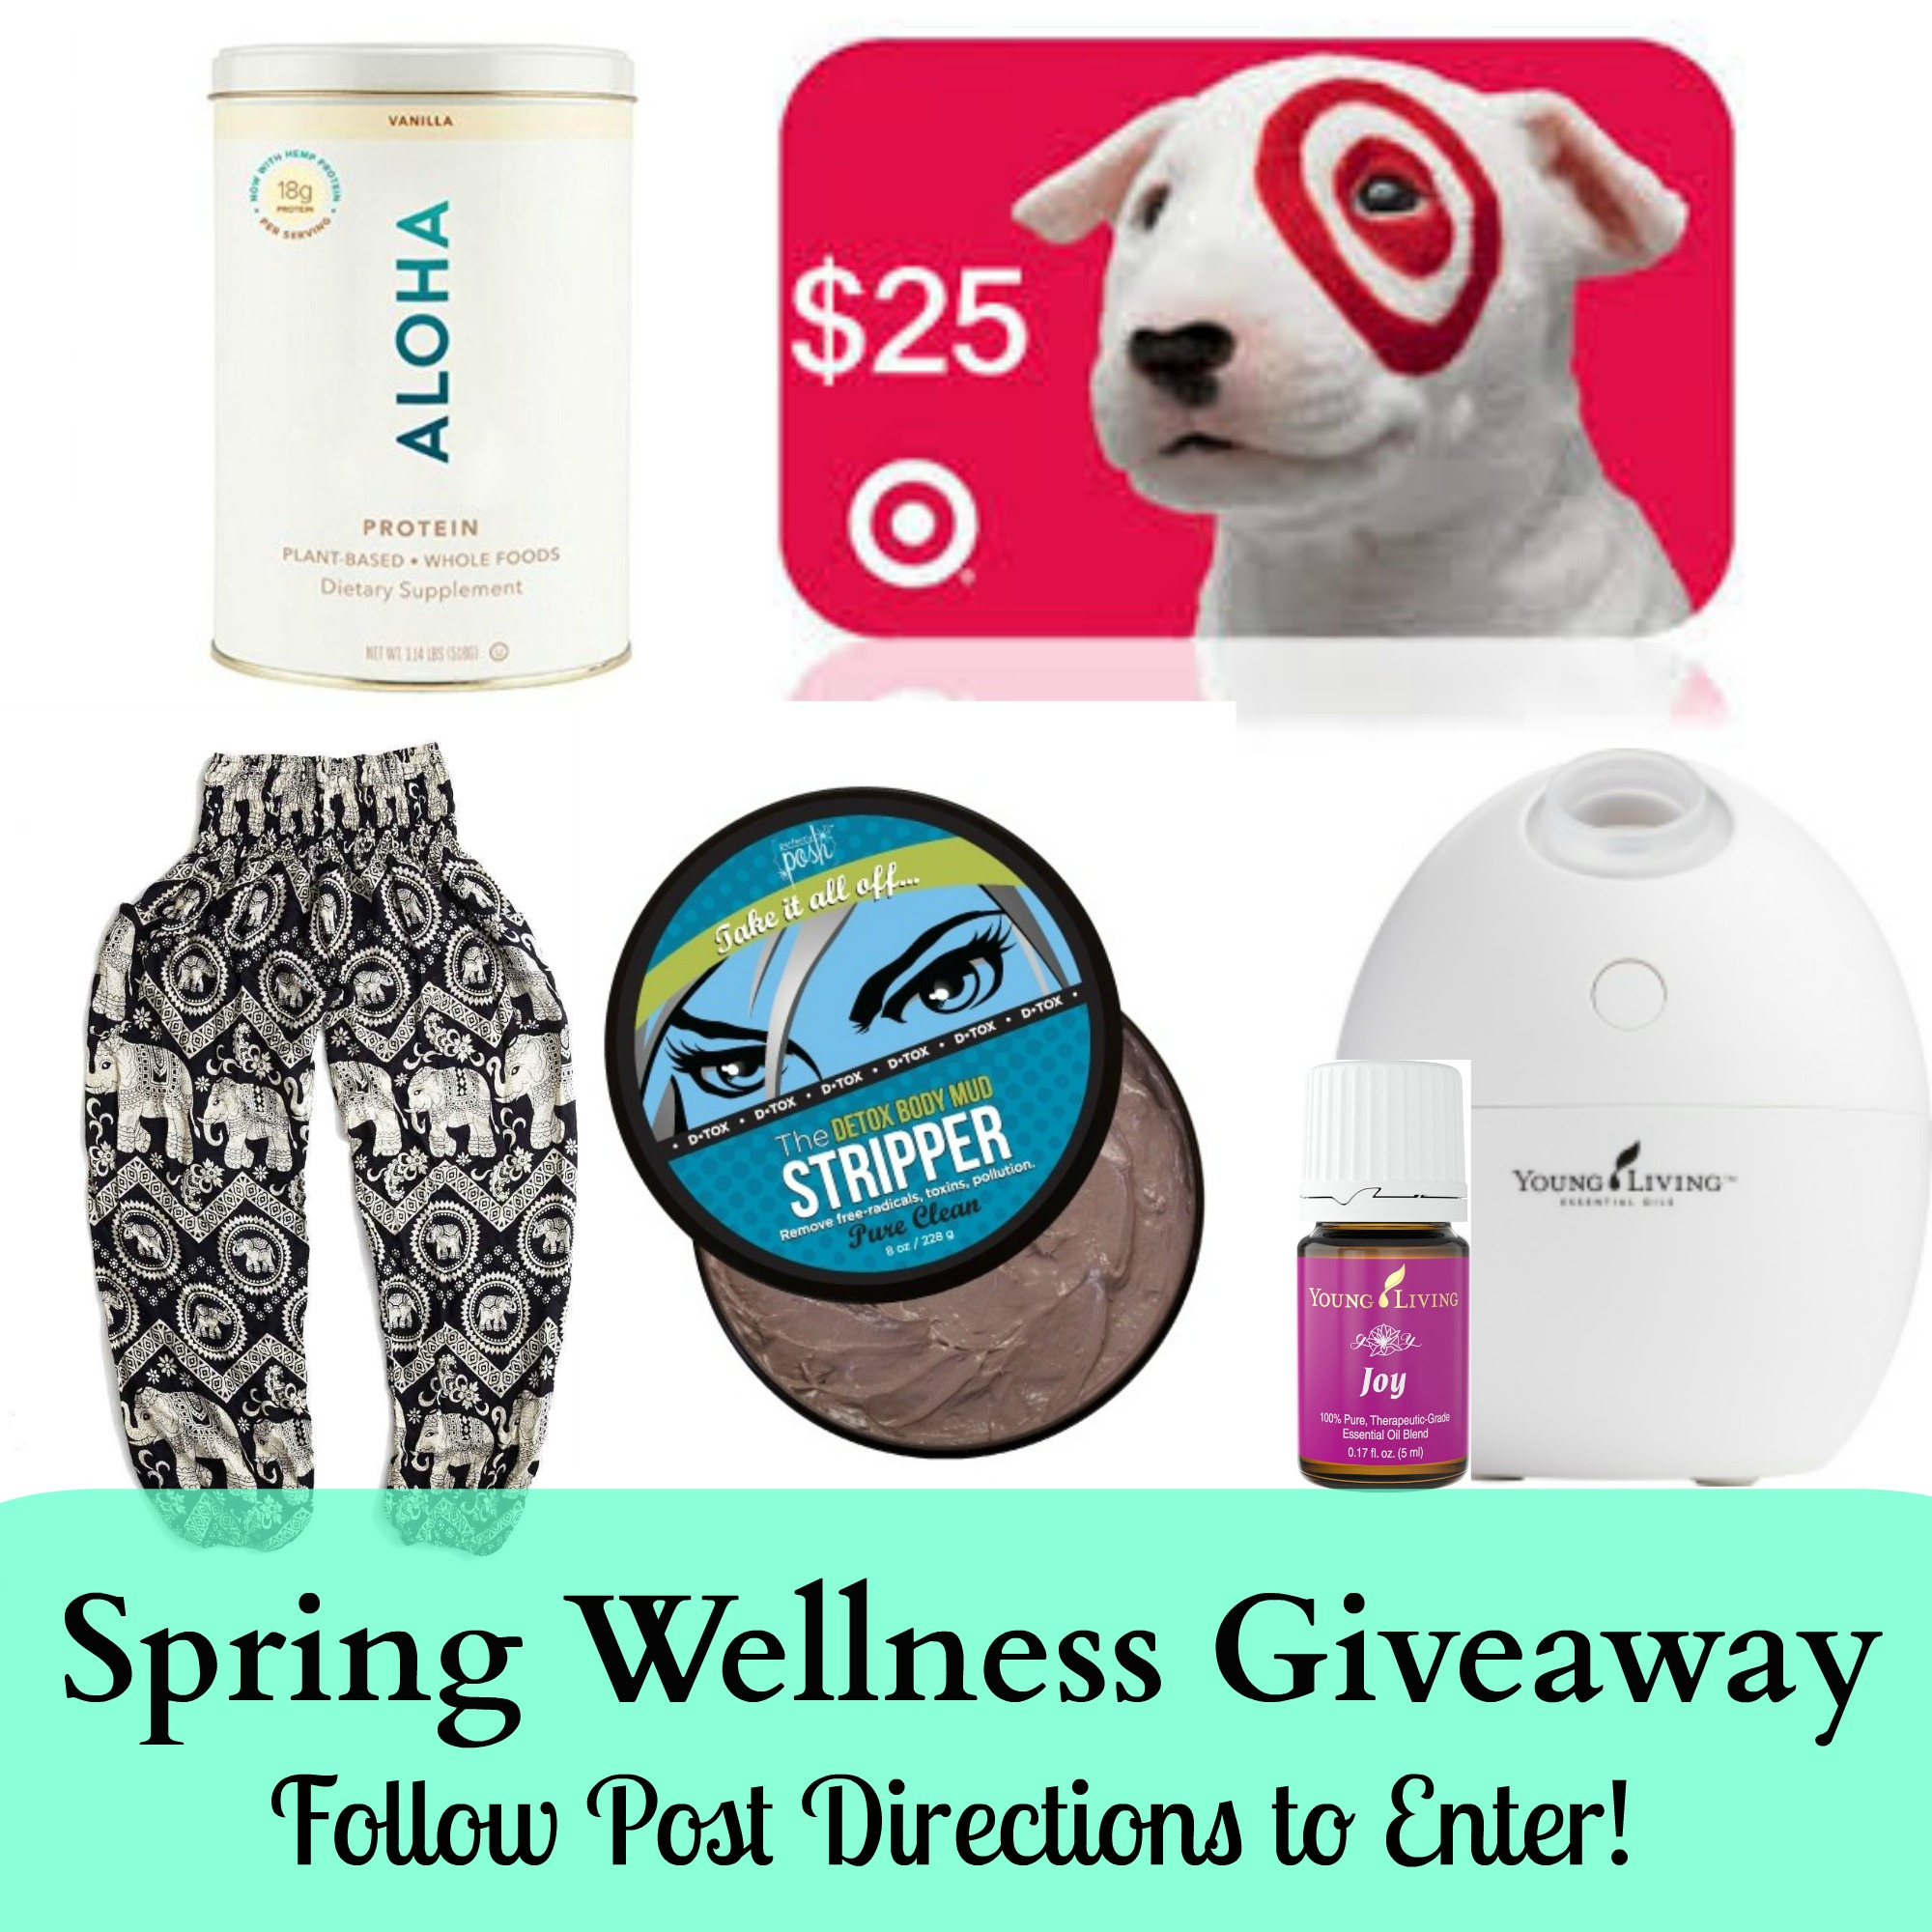 Spring Wellness Giveaway!